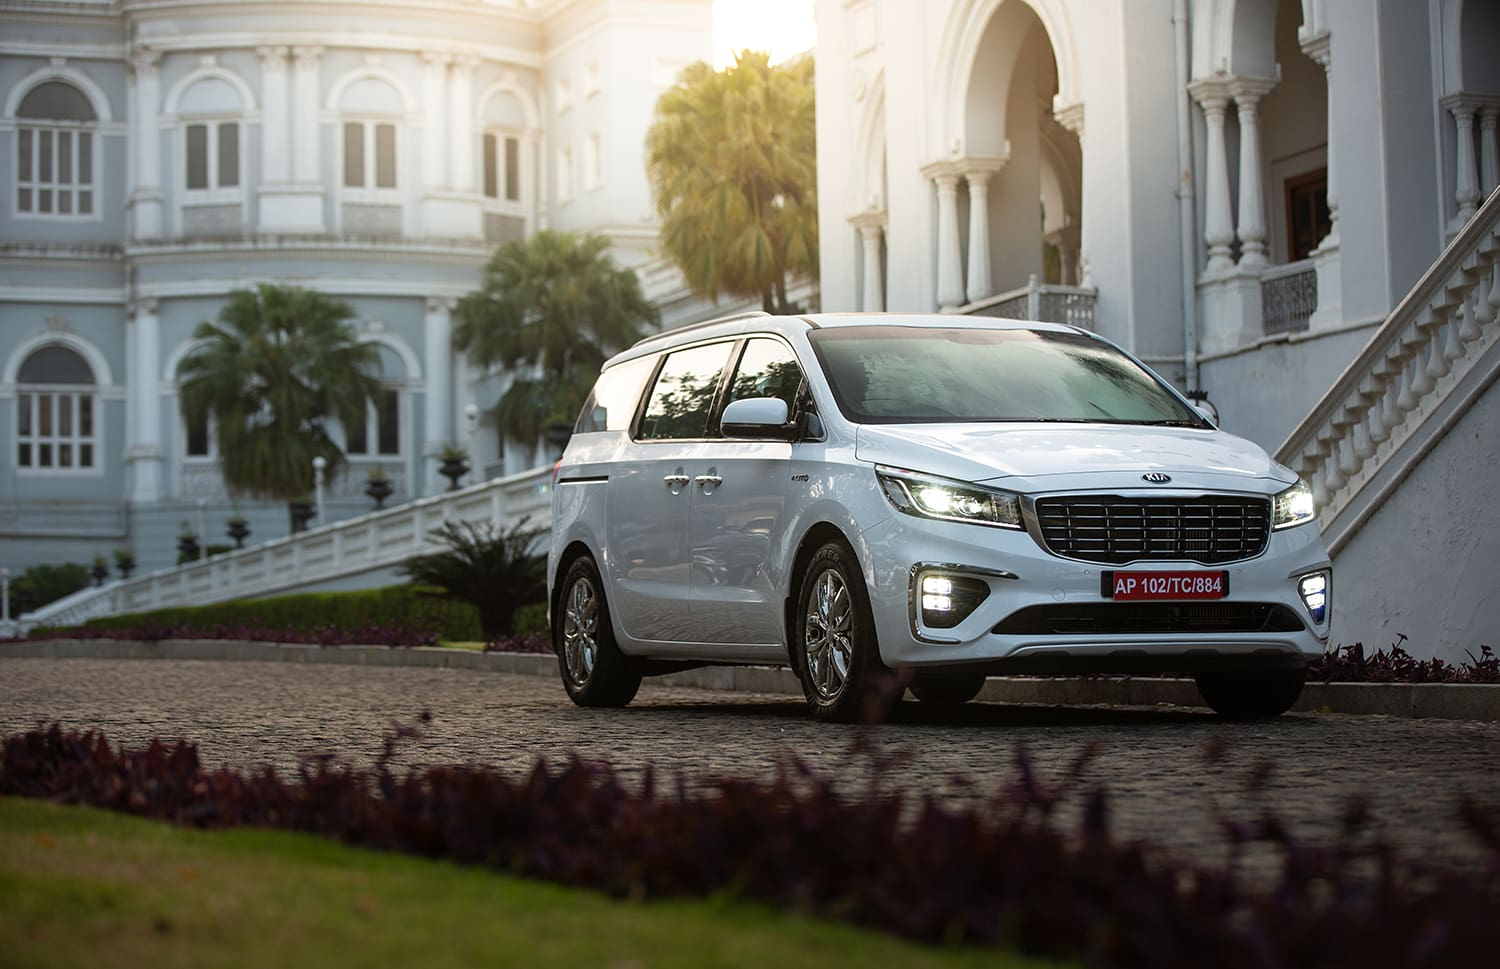 Kia Carnival Limousine: First Drive Review